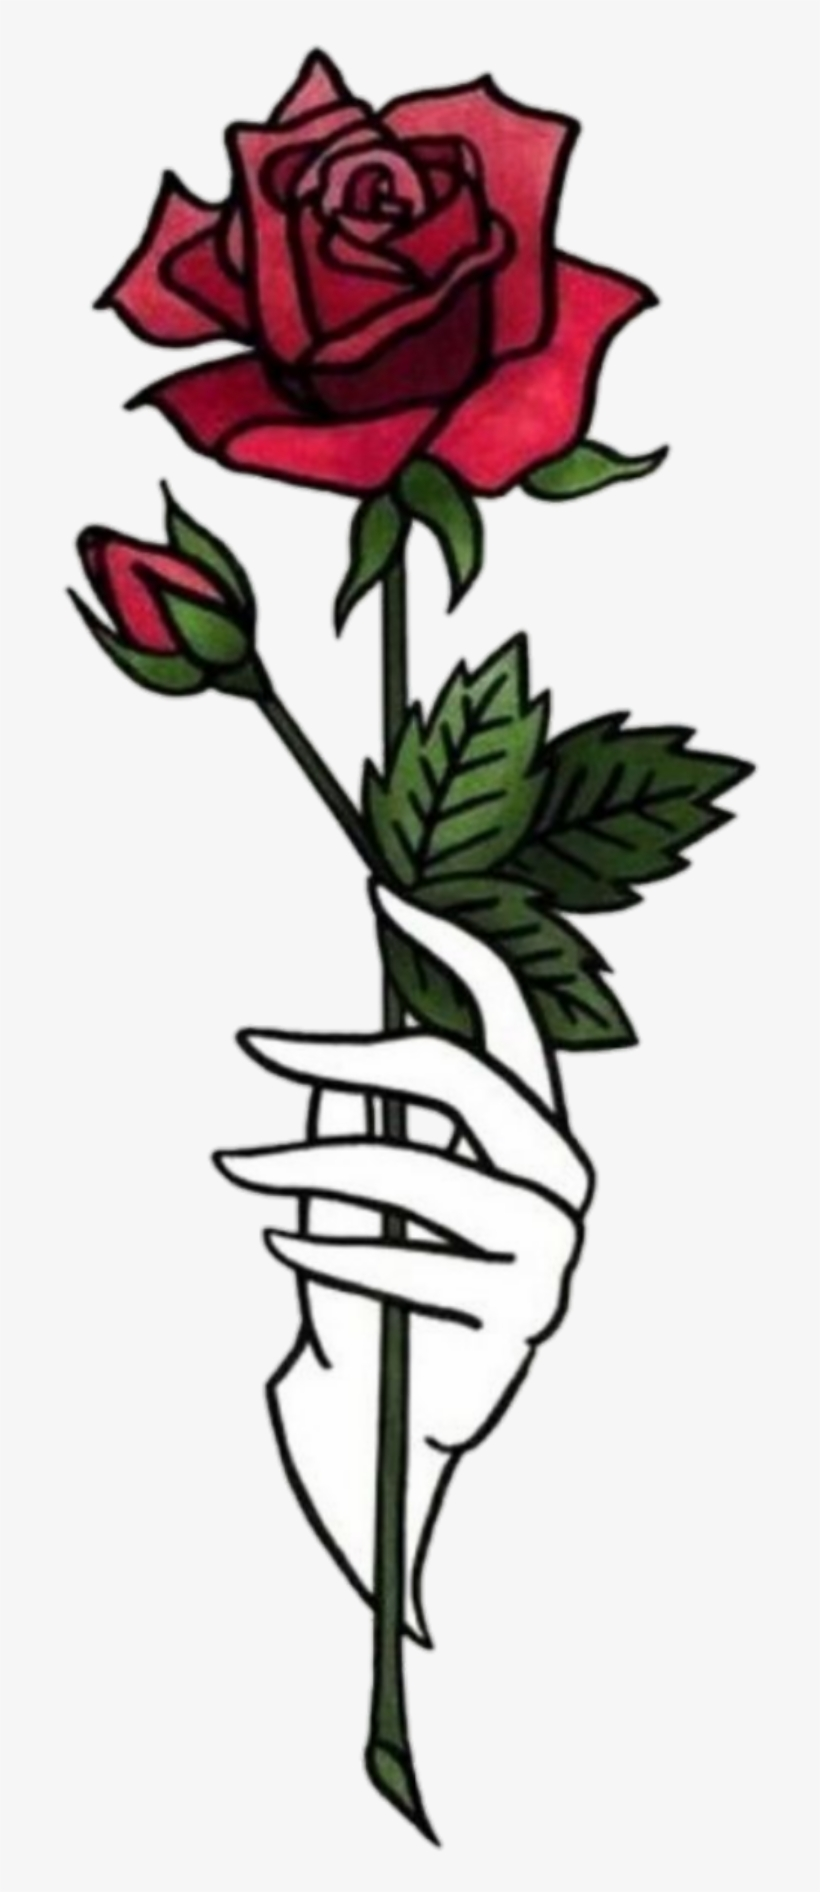 Sticker Hand Hands Tumblr Aesthetic Flower Png Rose Shawol Rose